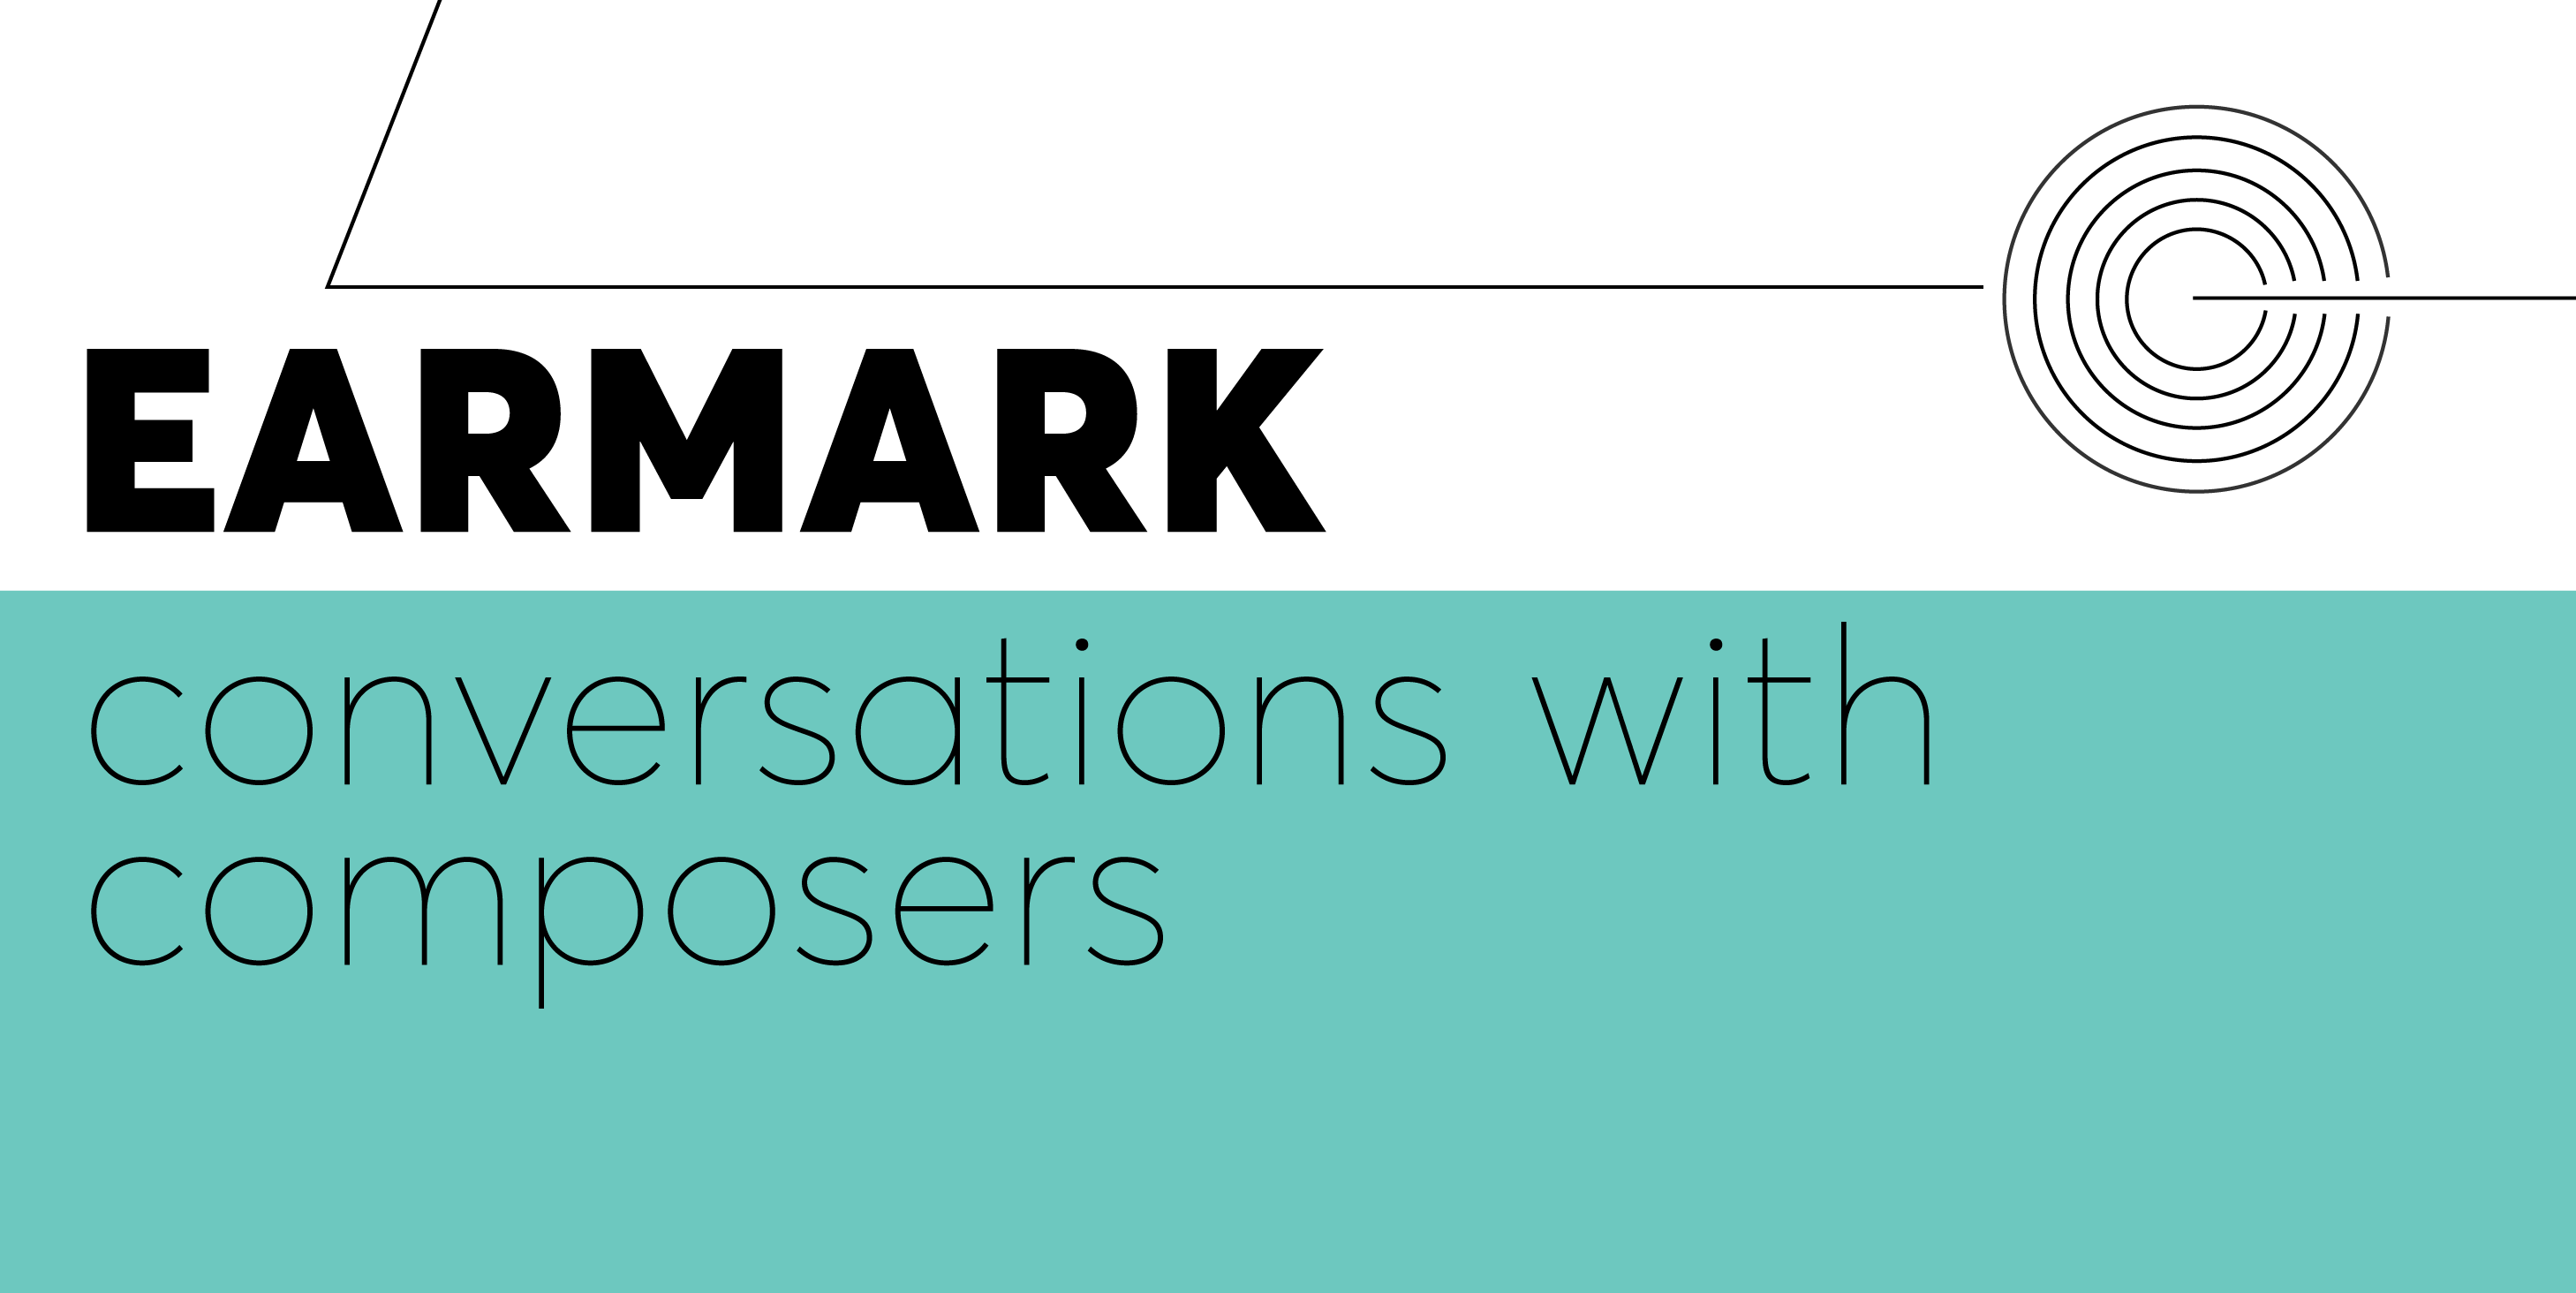 Earmark - Conversations with Composers